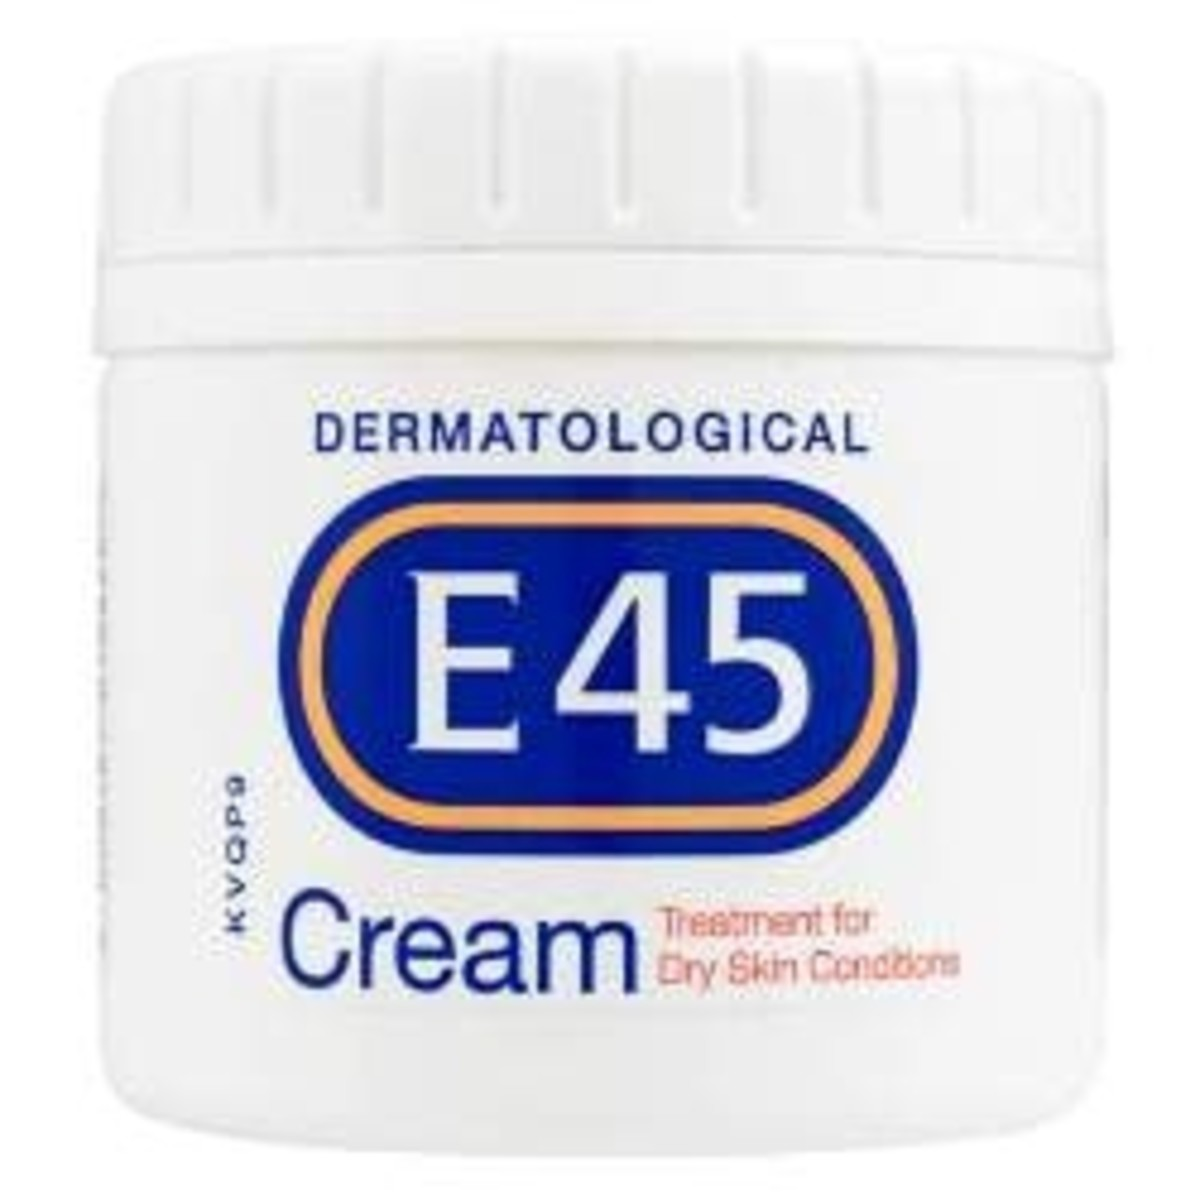 E45 Creams and Lotions Review